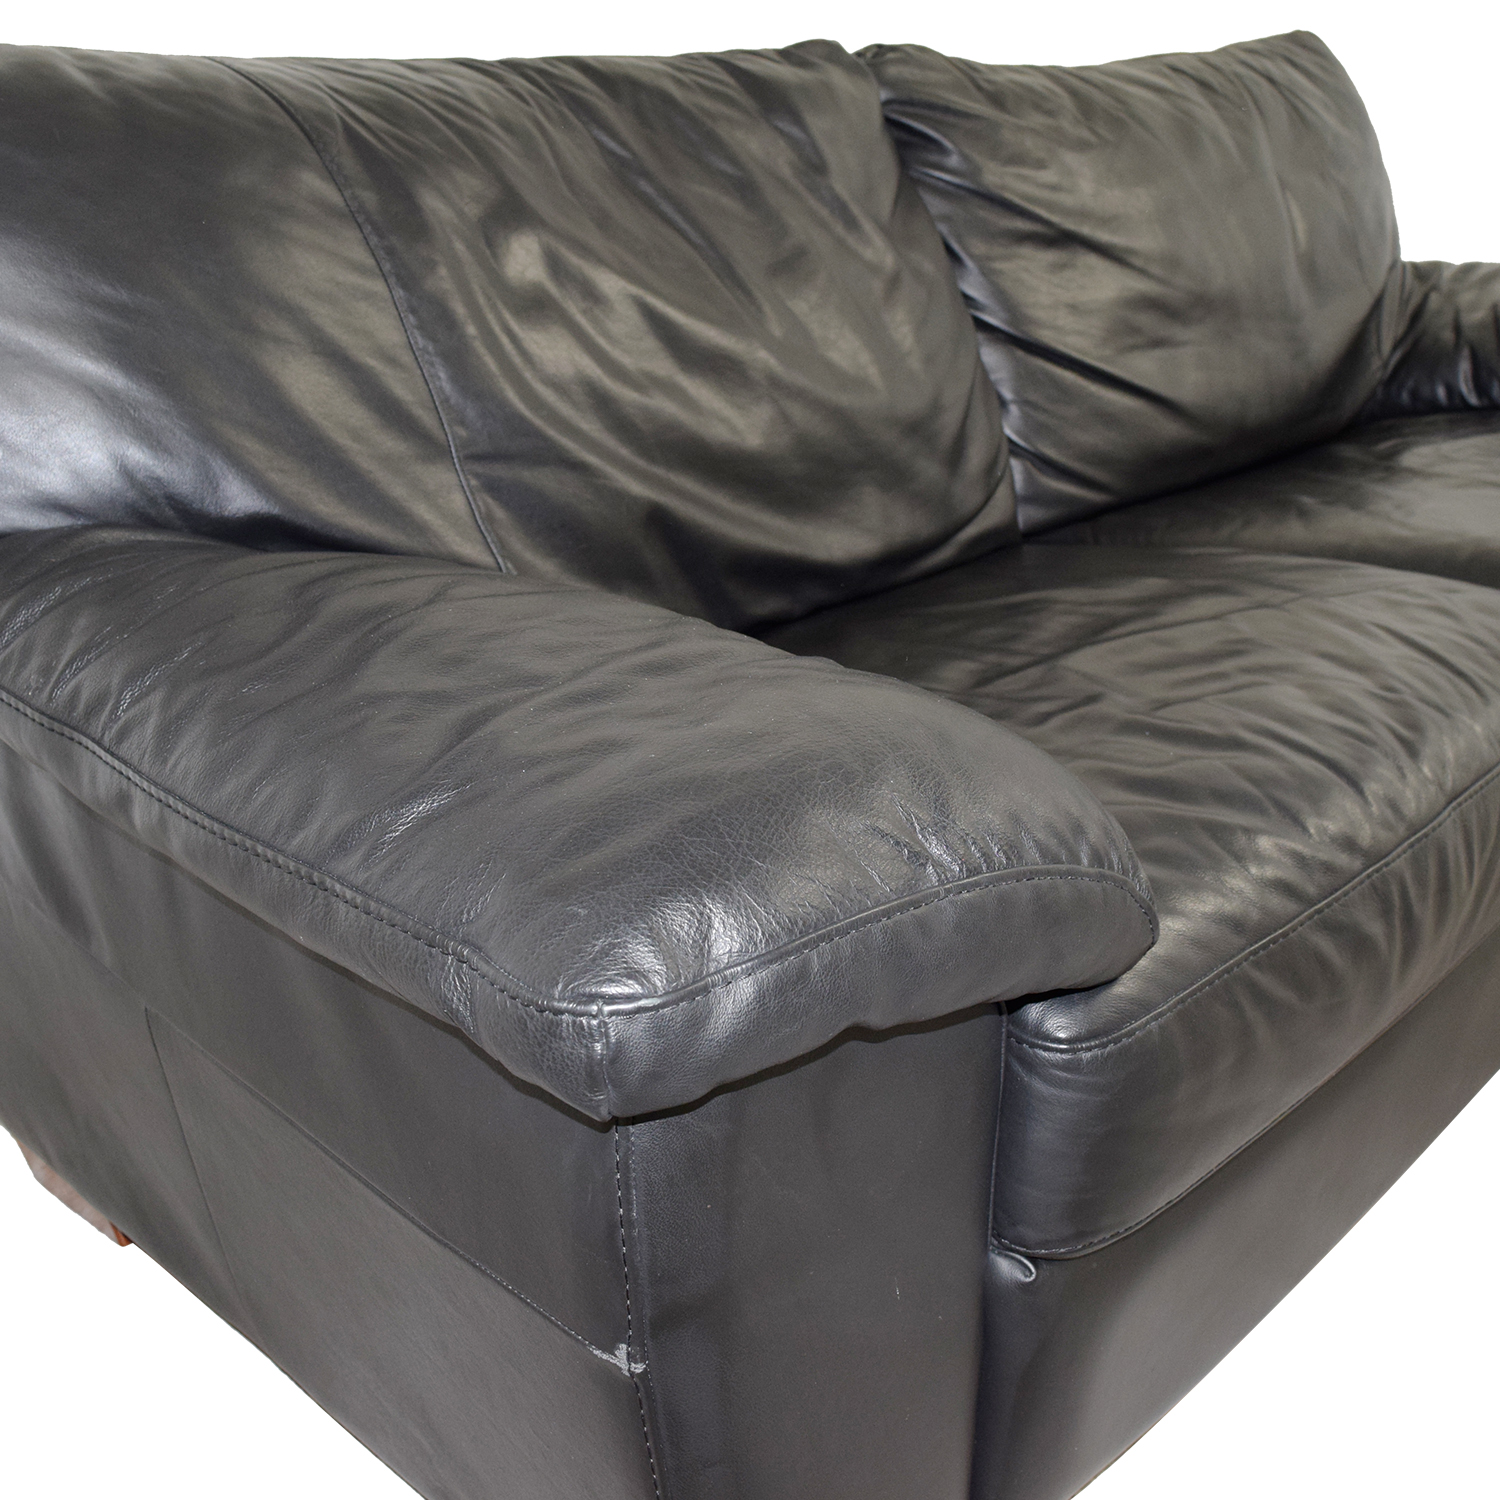 IKEA IKEA Black Leather Two-Cushion Couch Classic Sofas